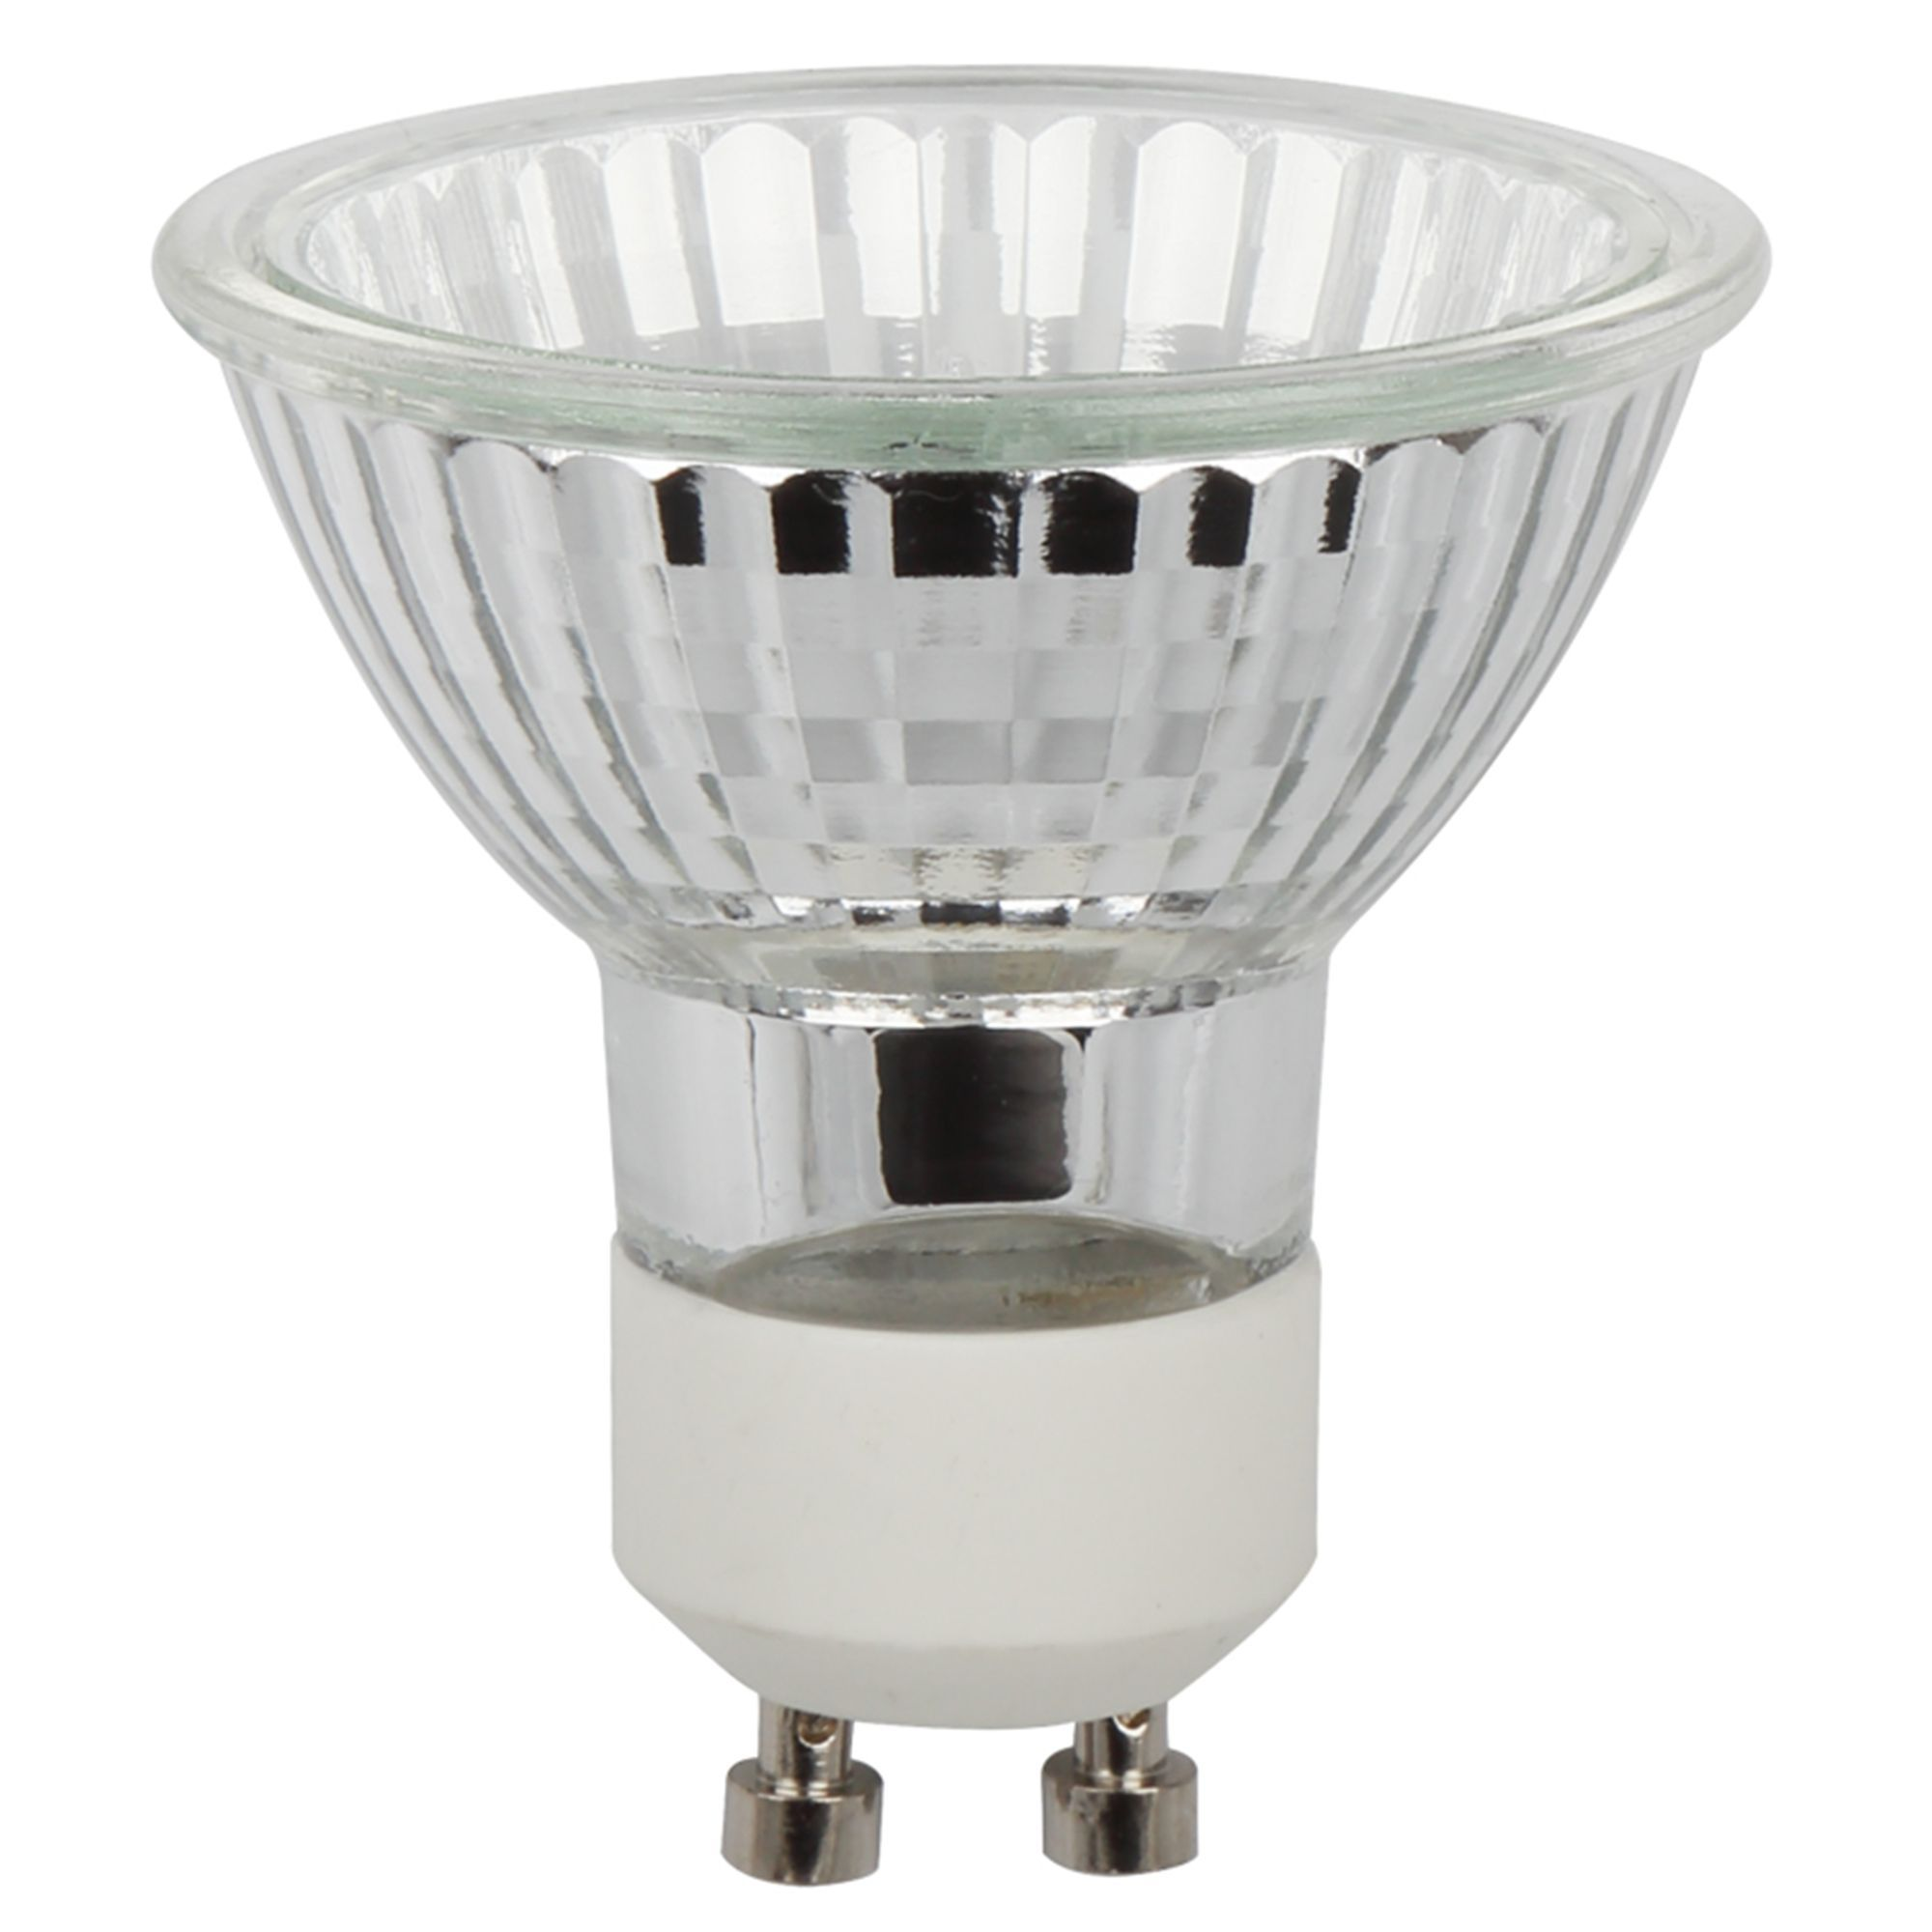 Halogen Gu10 Diall Gu10 28w Halogen Eco Dimmable Reflector Spot Light